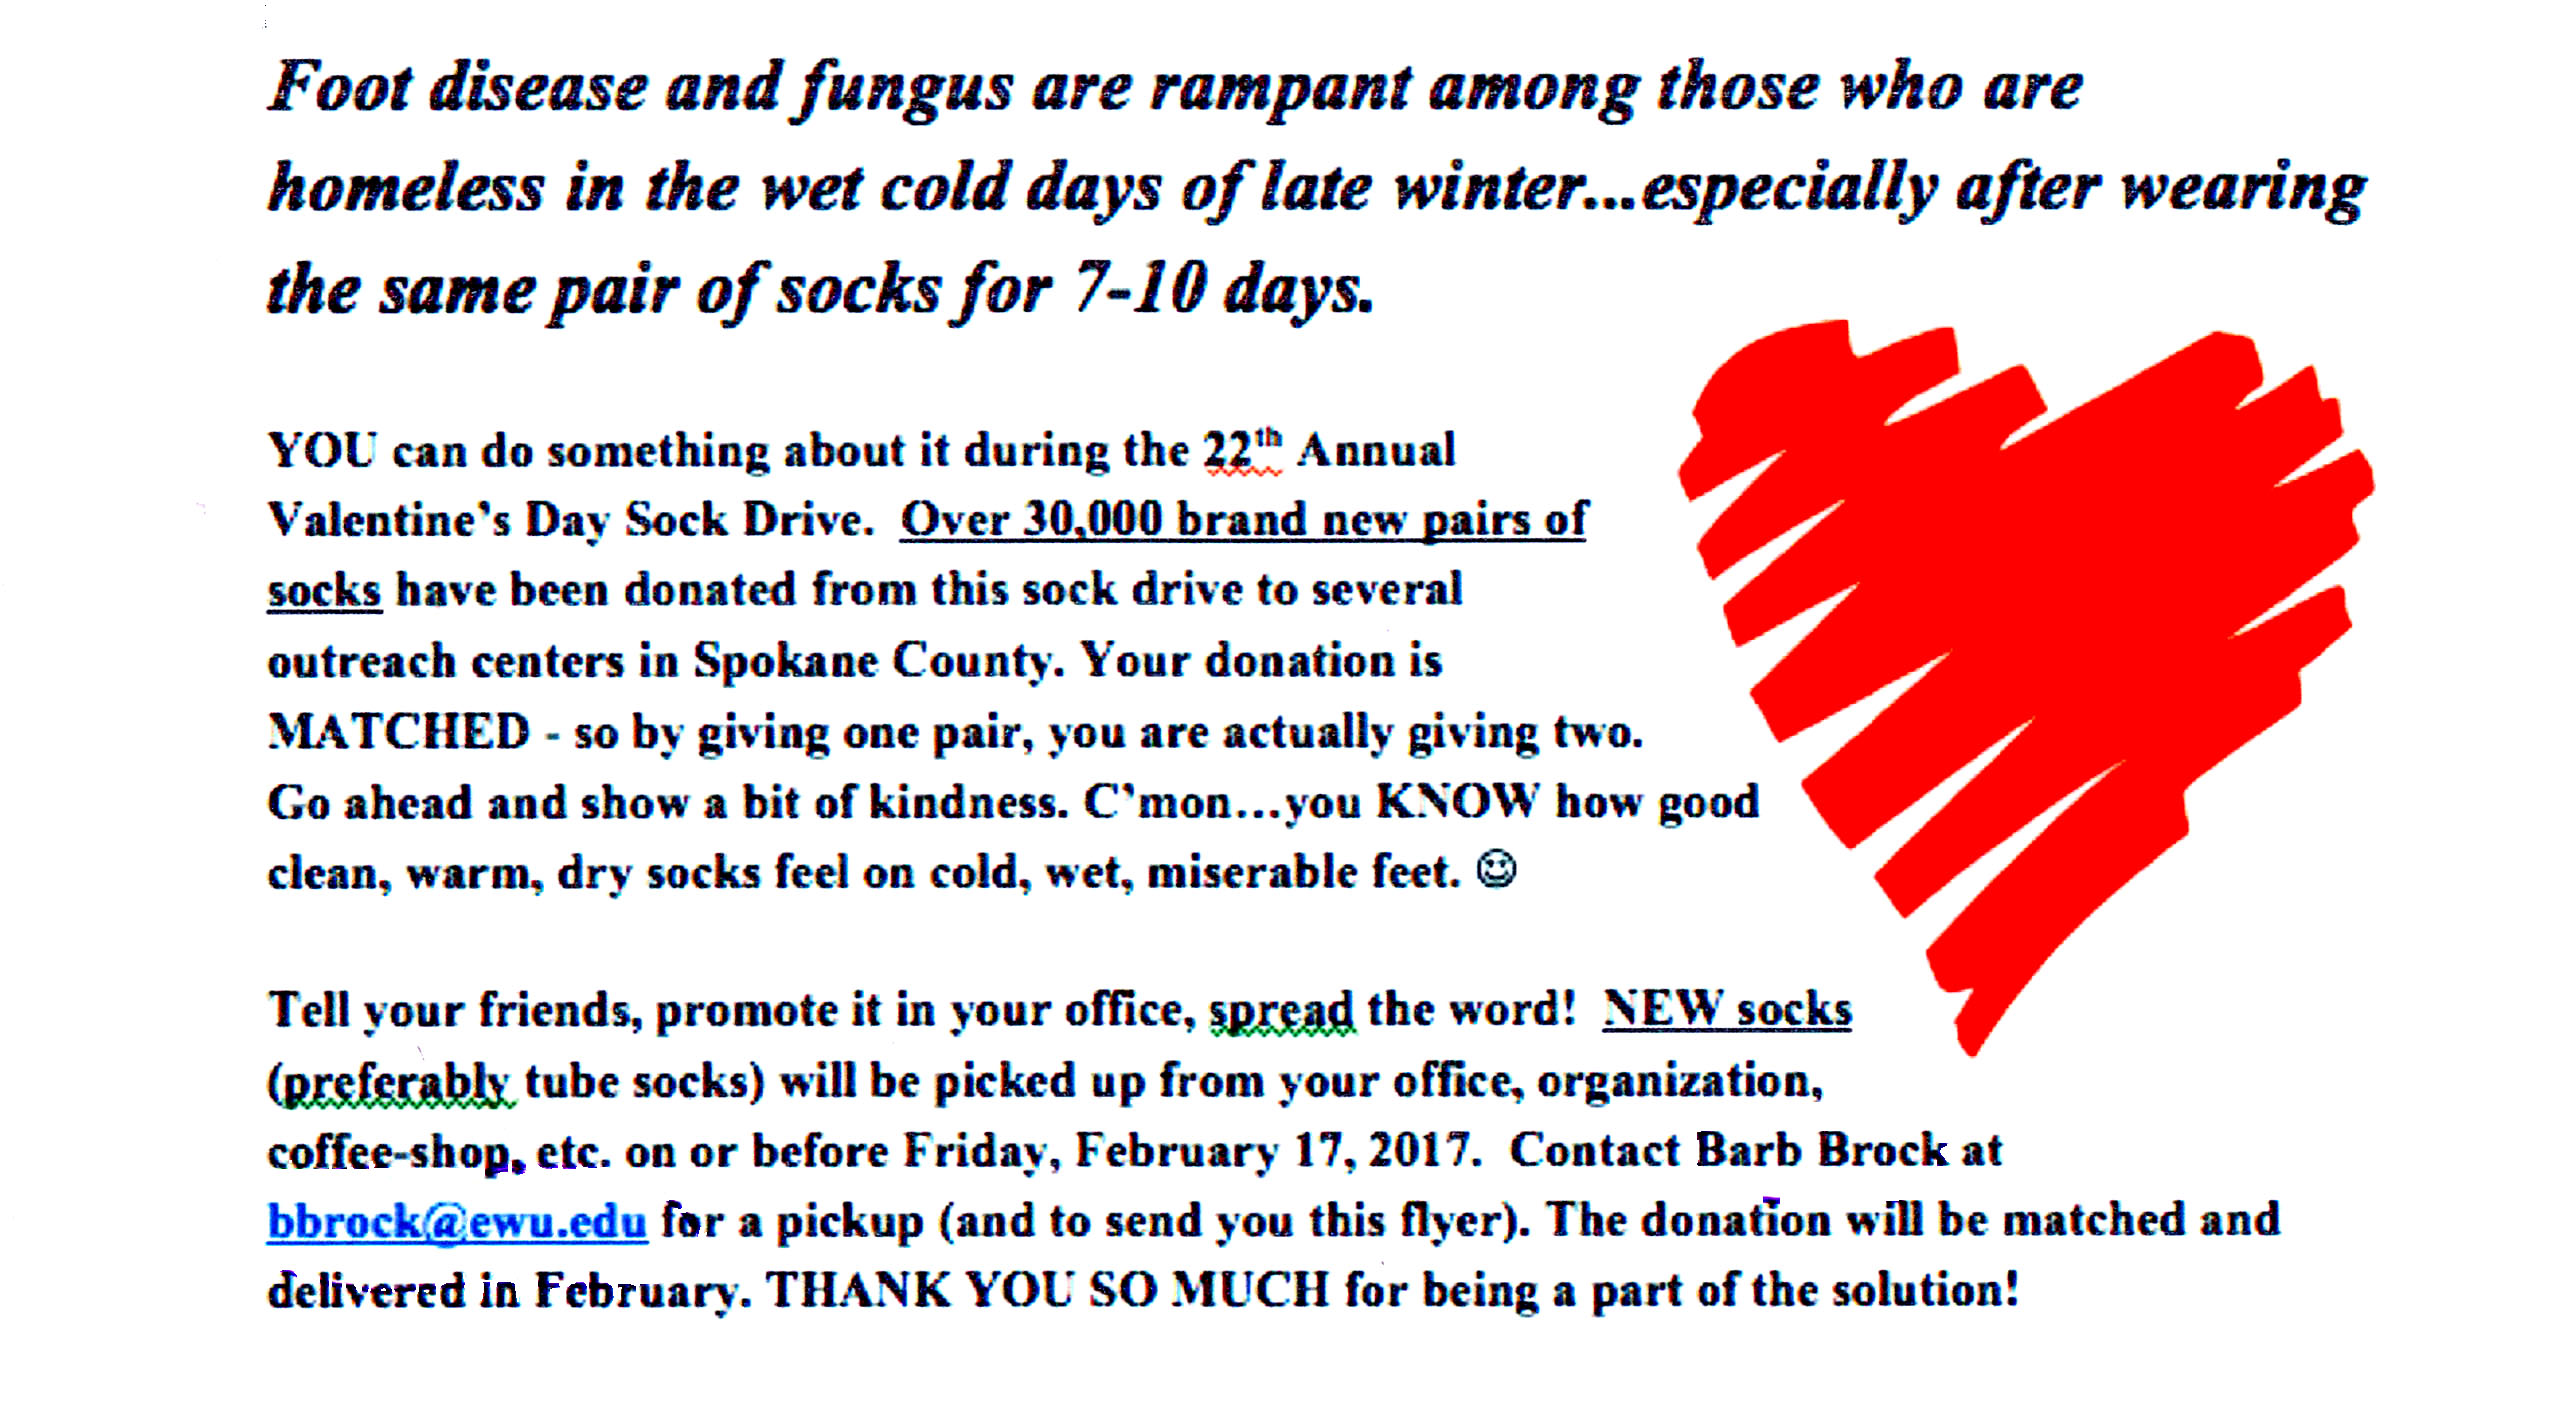 socks-for-homeless_001